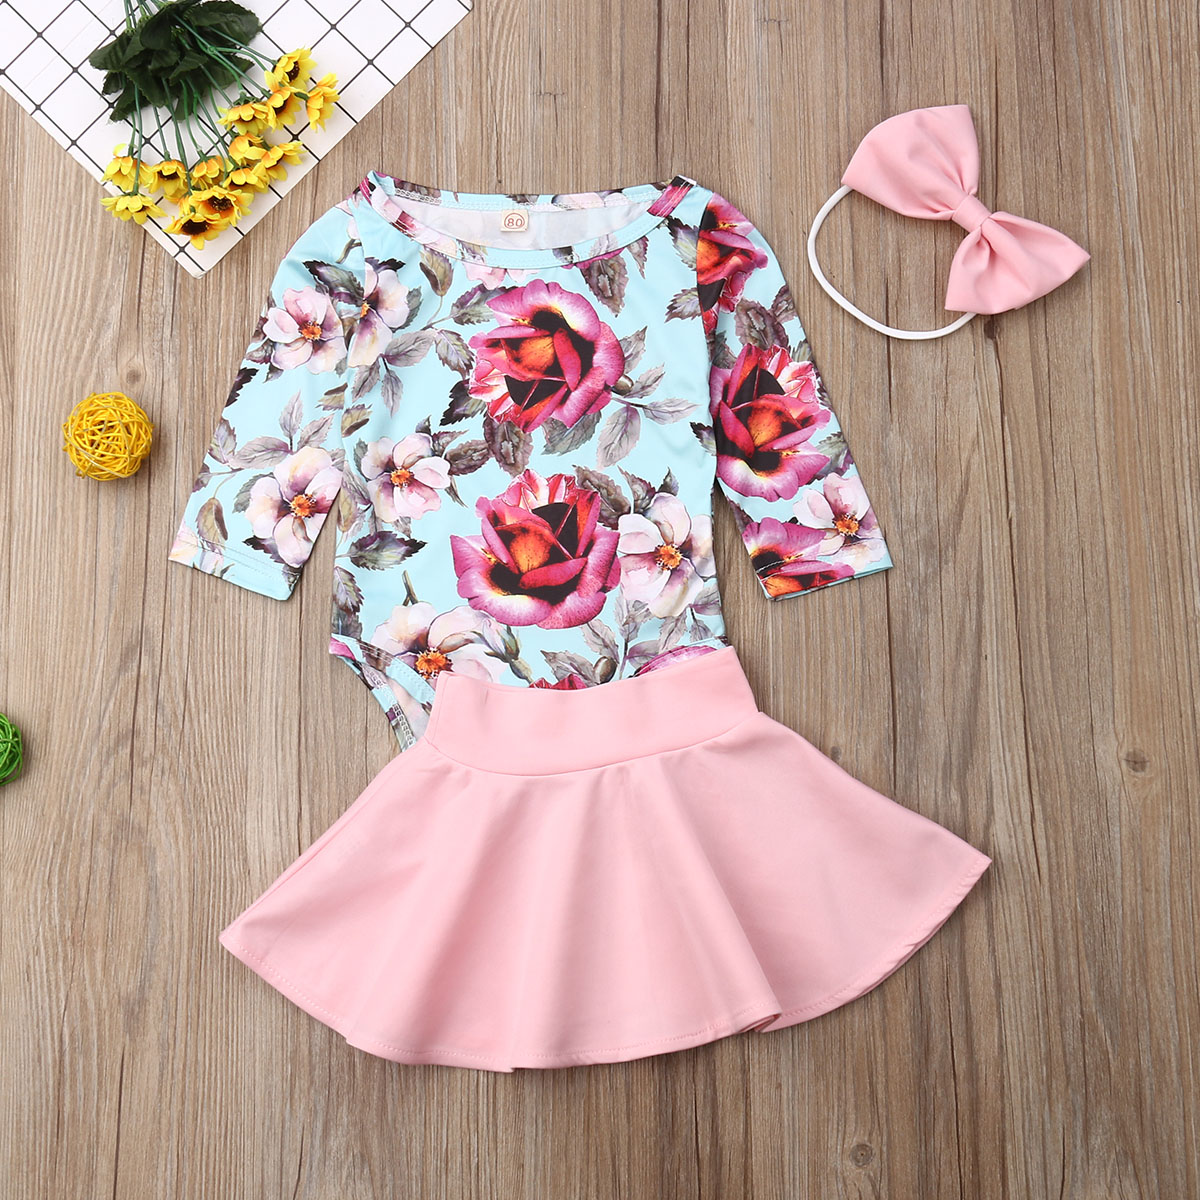 Pudcoco Newborn Baby Girl Clothes Flower Print Long Sleeve Romper Tops Mini Skirt Headband 3Pcs Outfits Cotton Clothes